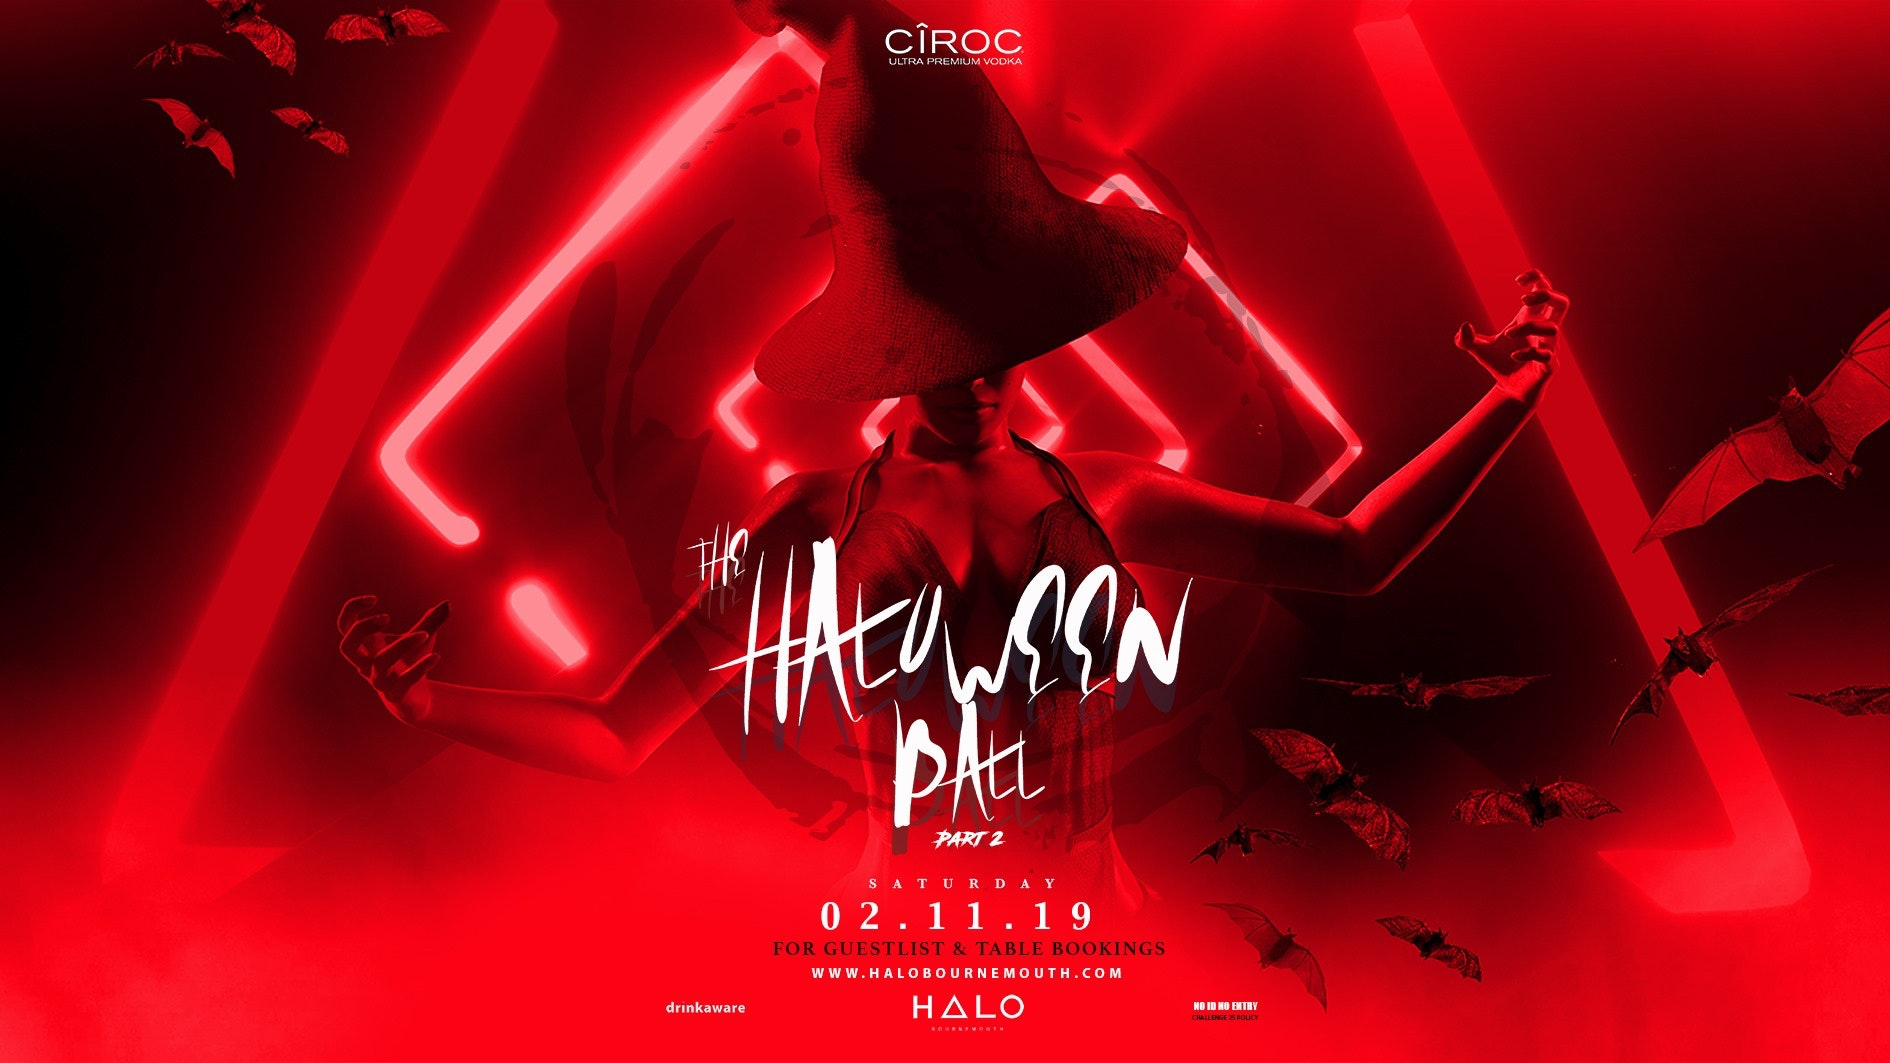 THE HALO-WEEN BALL – PT 2